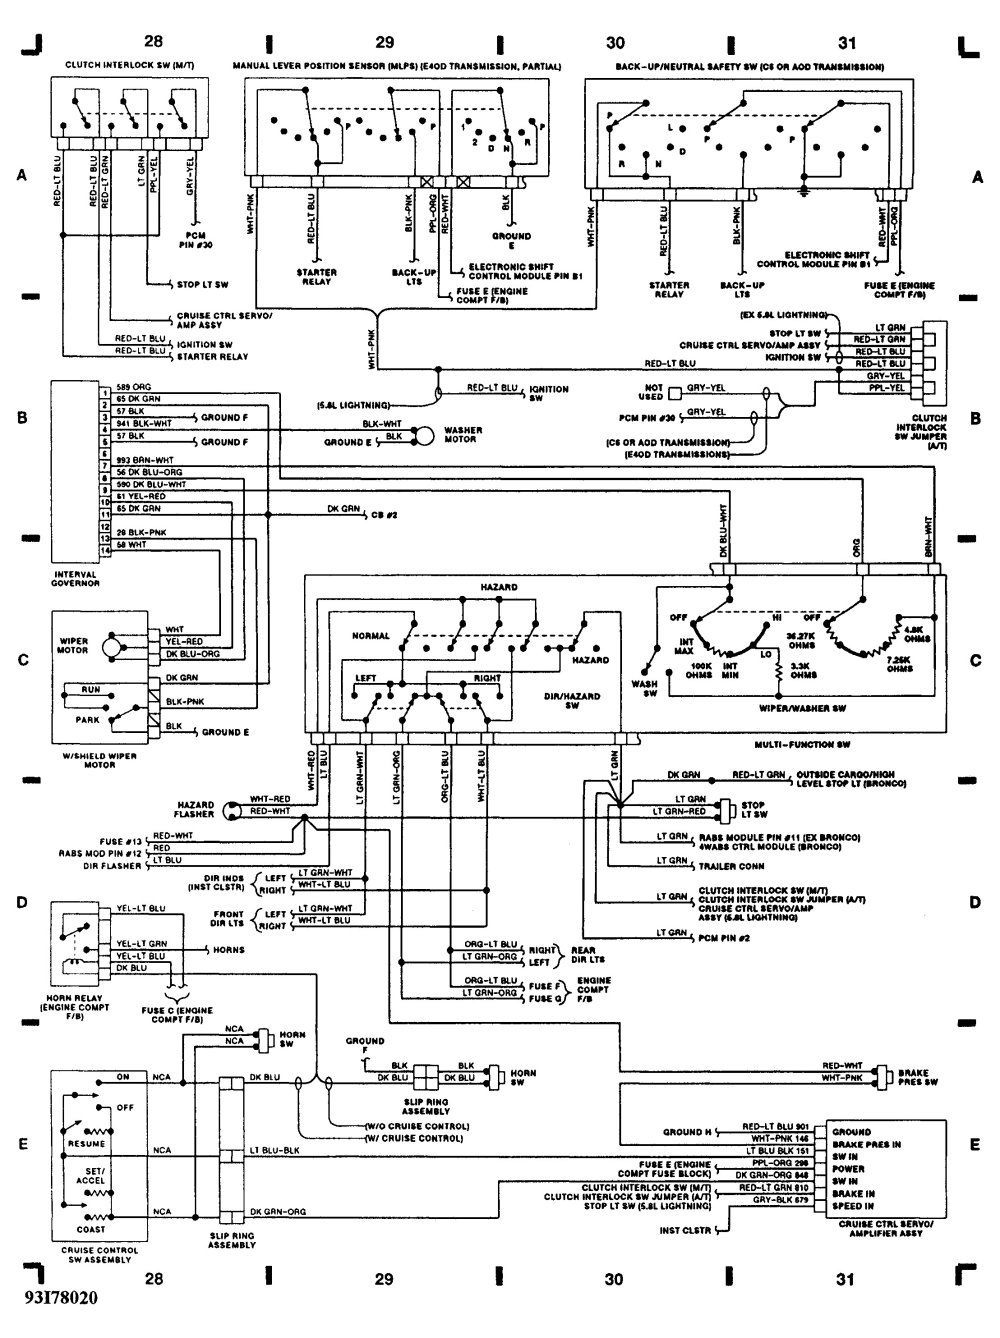 medium resolution of ficm wiring diagram wiring diagram dat 04 f250 ficm wiring diagram